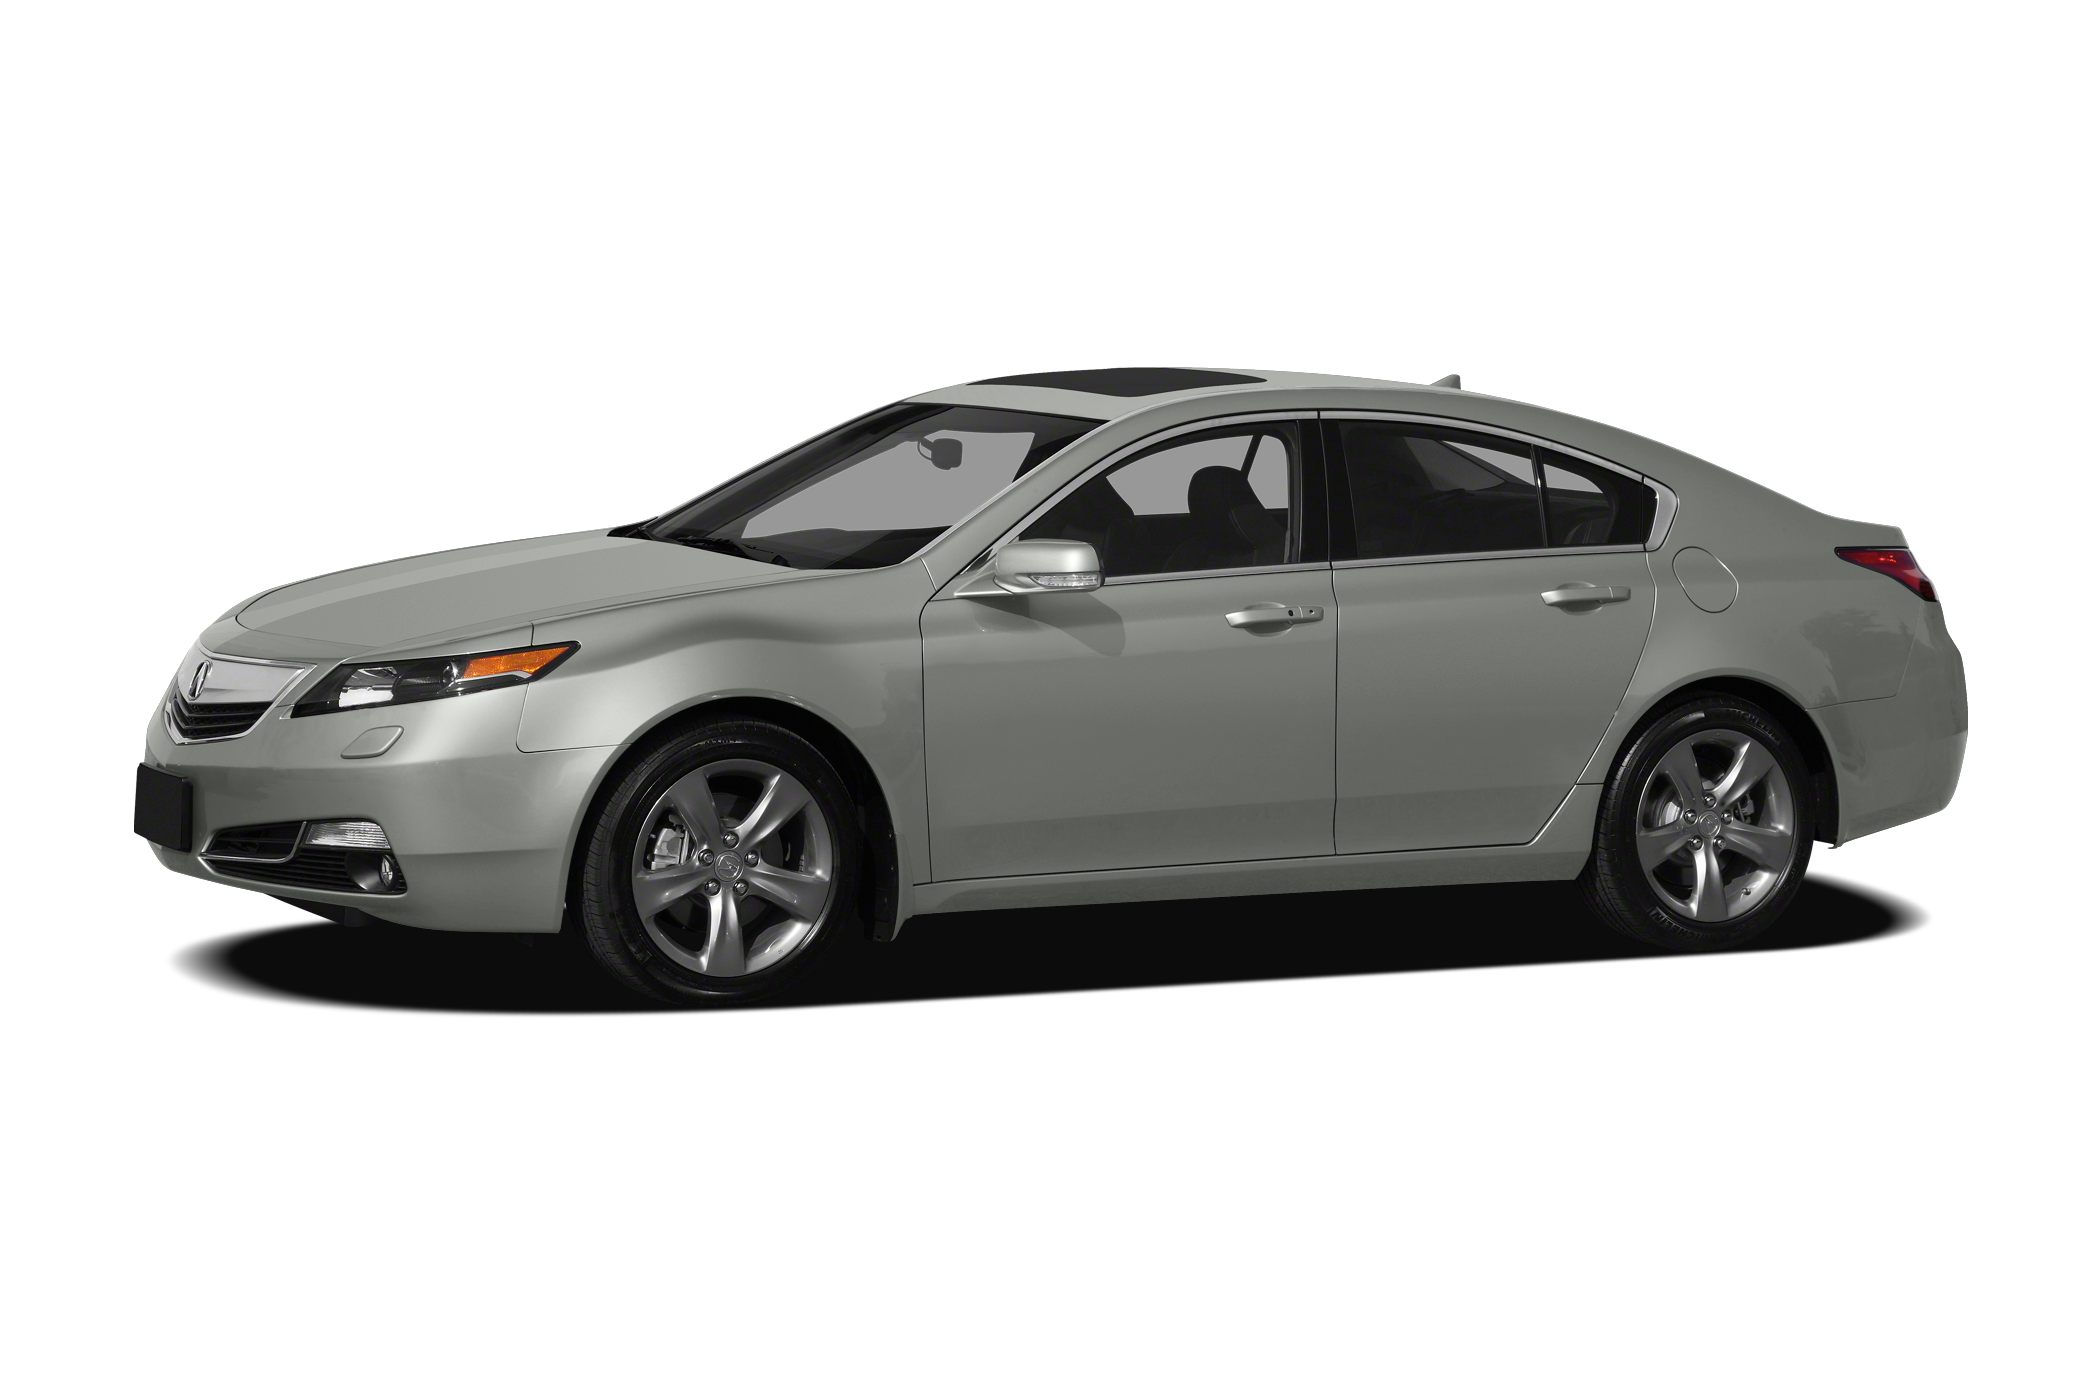 2012 Acura TL 35 Clean Carfax One Owner - Acura Certified - 4 New Tires Bluetooth 17 x 8 Aluminu